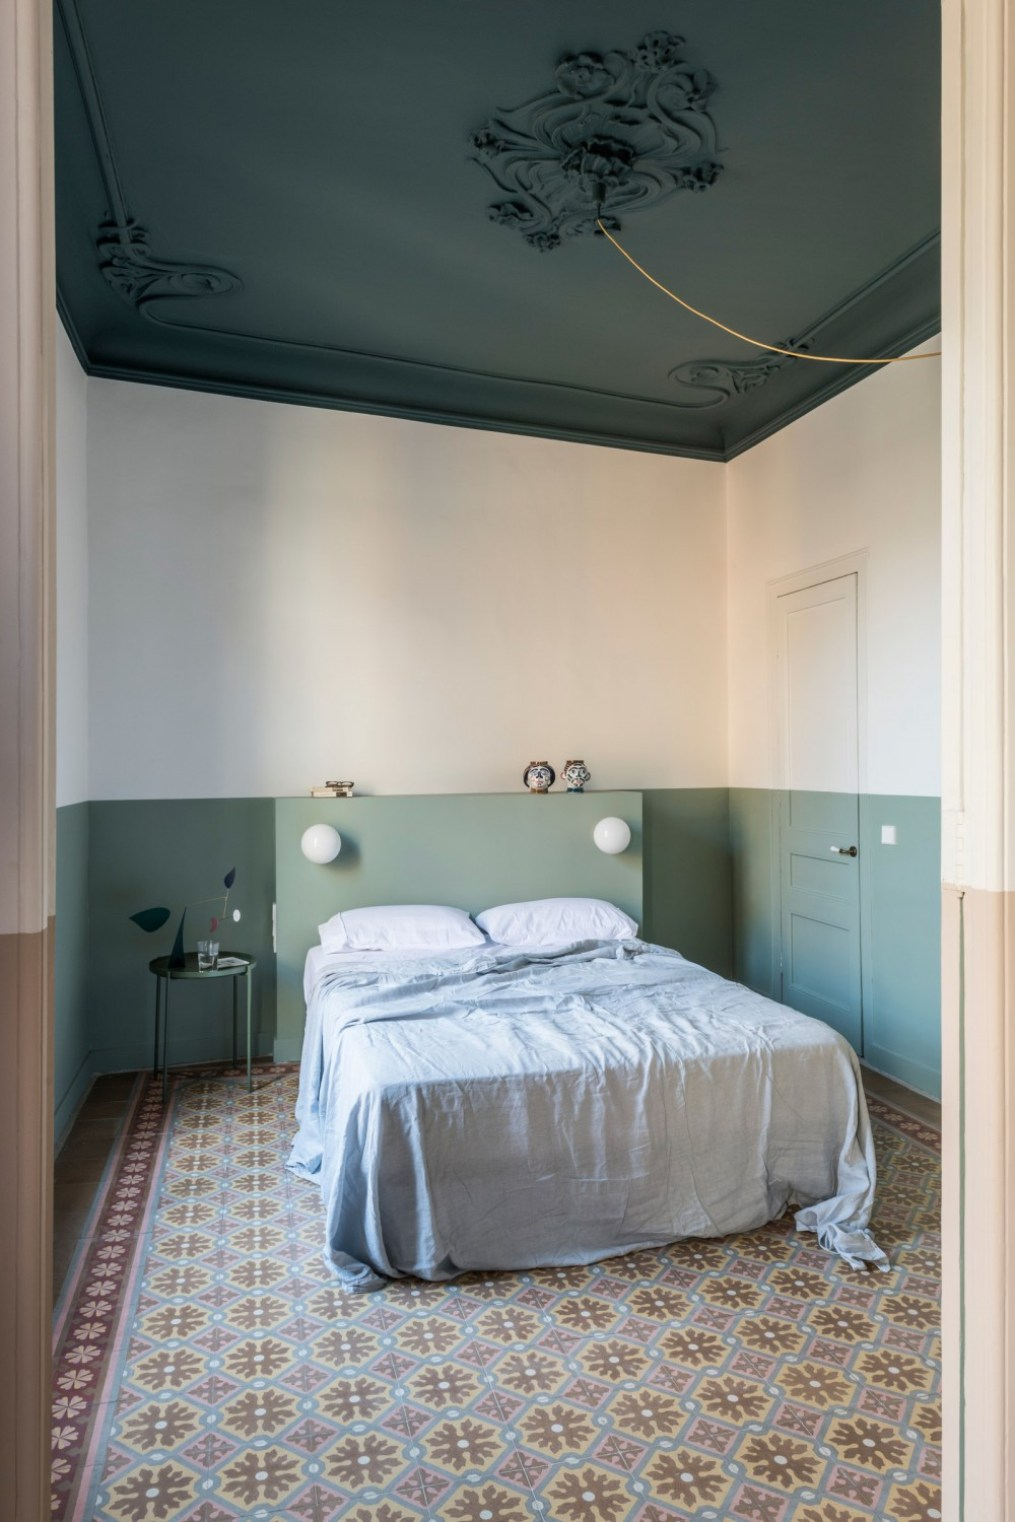 pThe master bedrooms mint walls were meant to be a complementary departure from the terracotta shade of the shared...